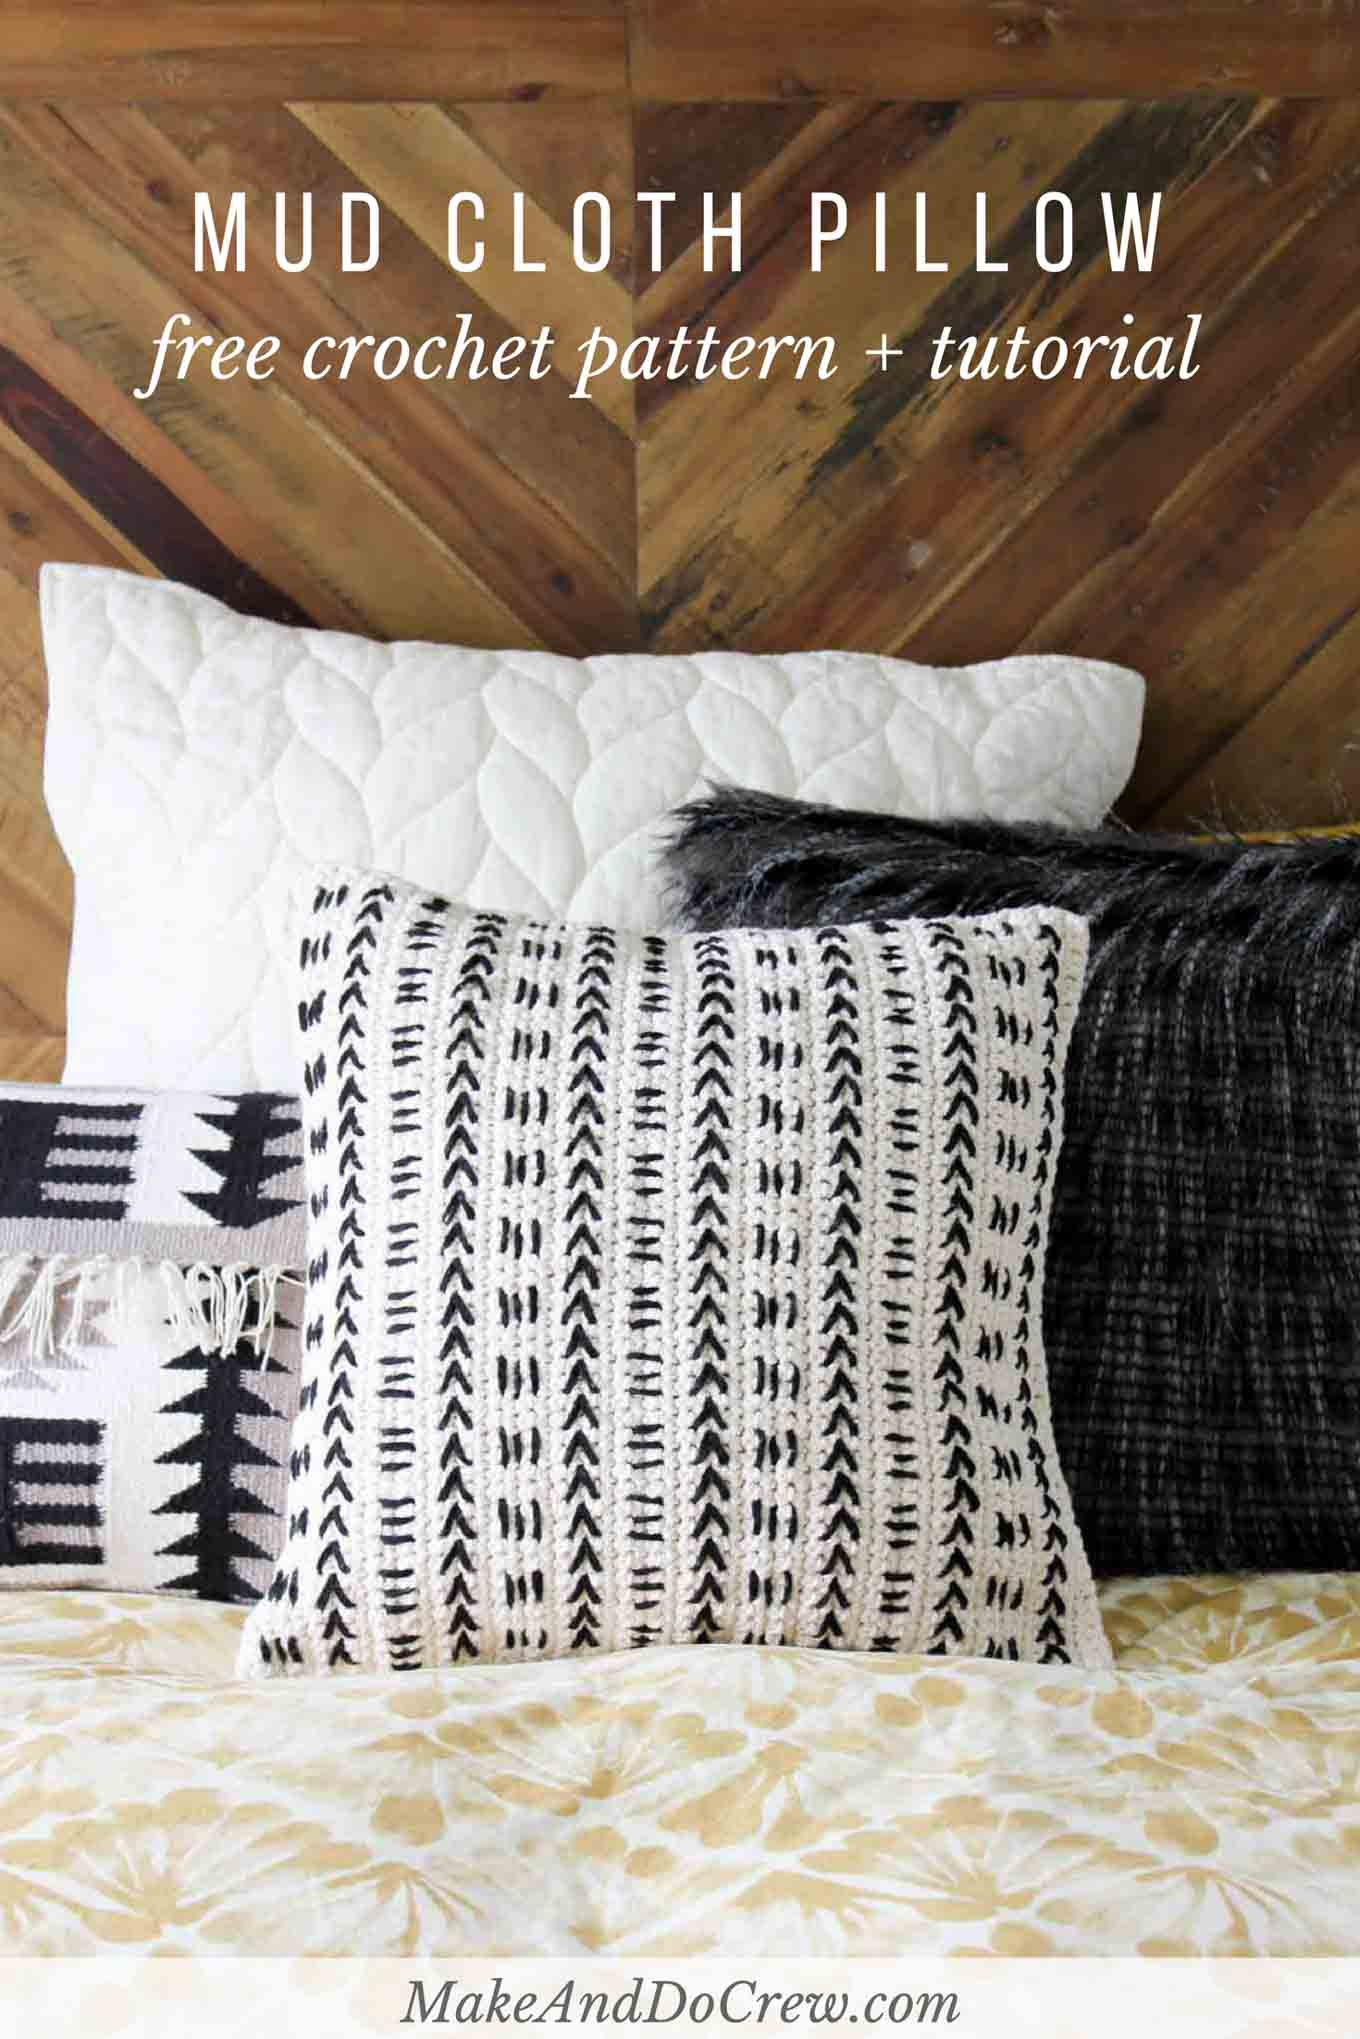 Mud Cloth Crochet Pillow Pattern - Free Pattern! - Make & Do Crew